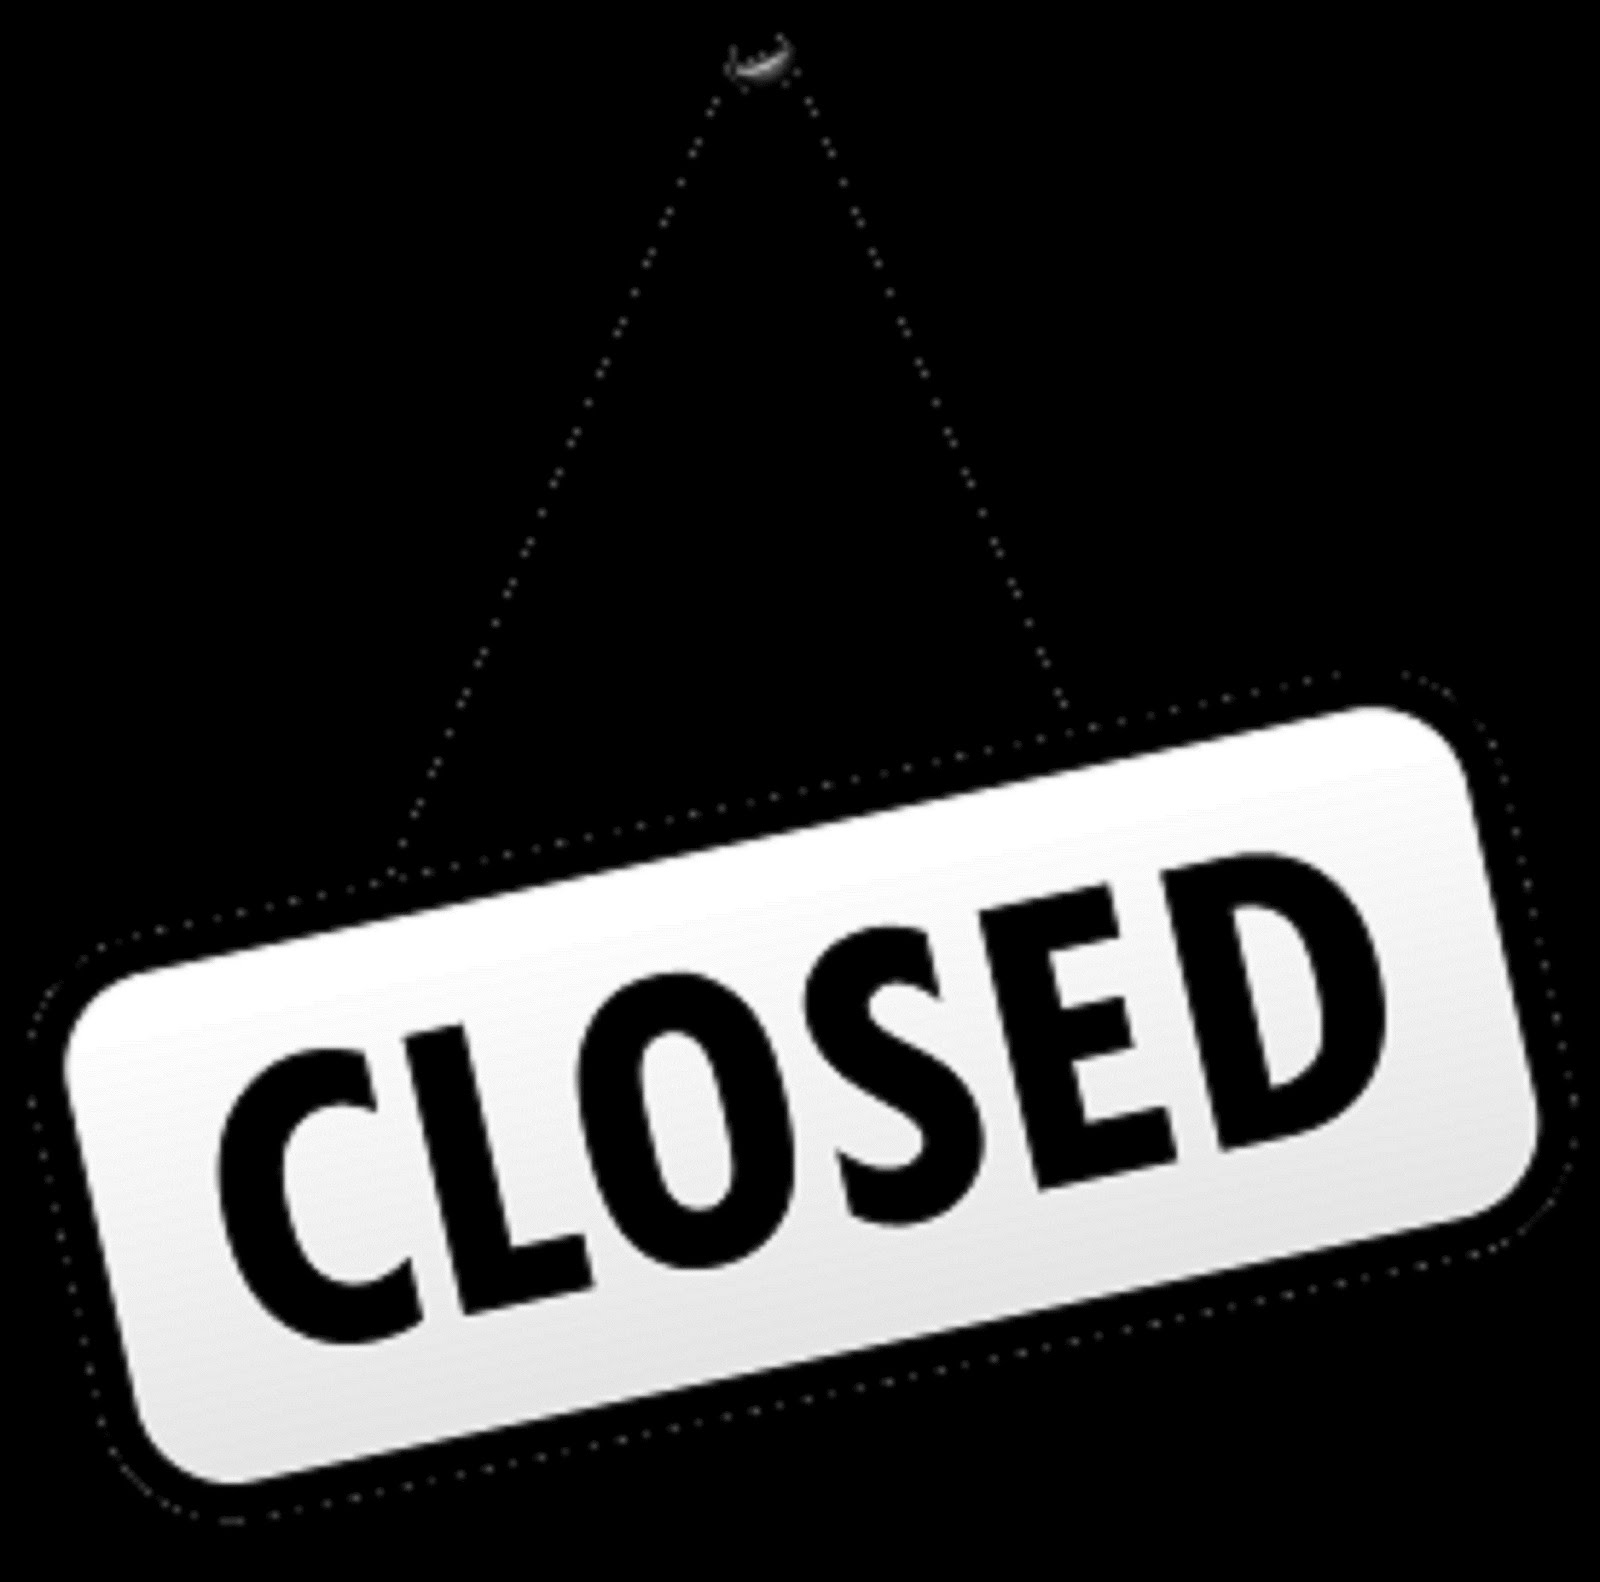 THIS SITE IS CLOSED - PLEASE CLICK ON BANNER POSTED ABOVE THIS MESSAGE TO GO TO THE KINGDOM OF HEAV